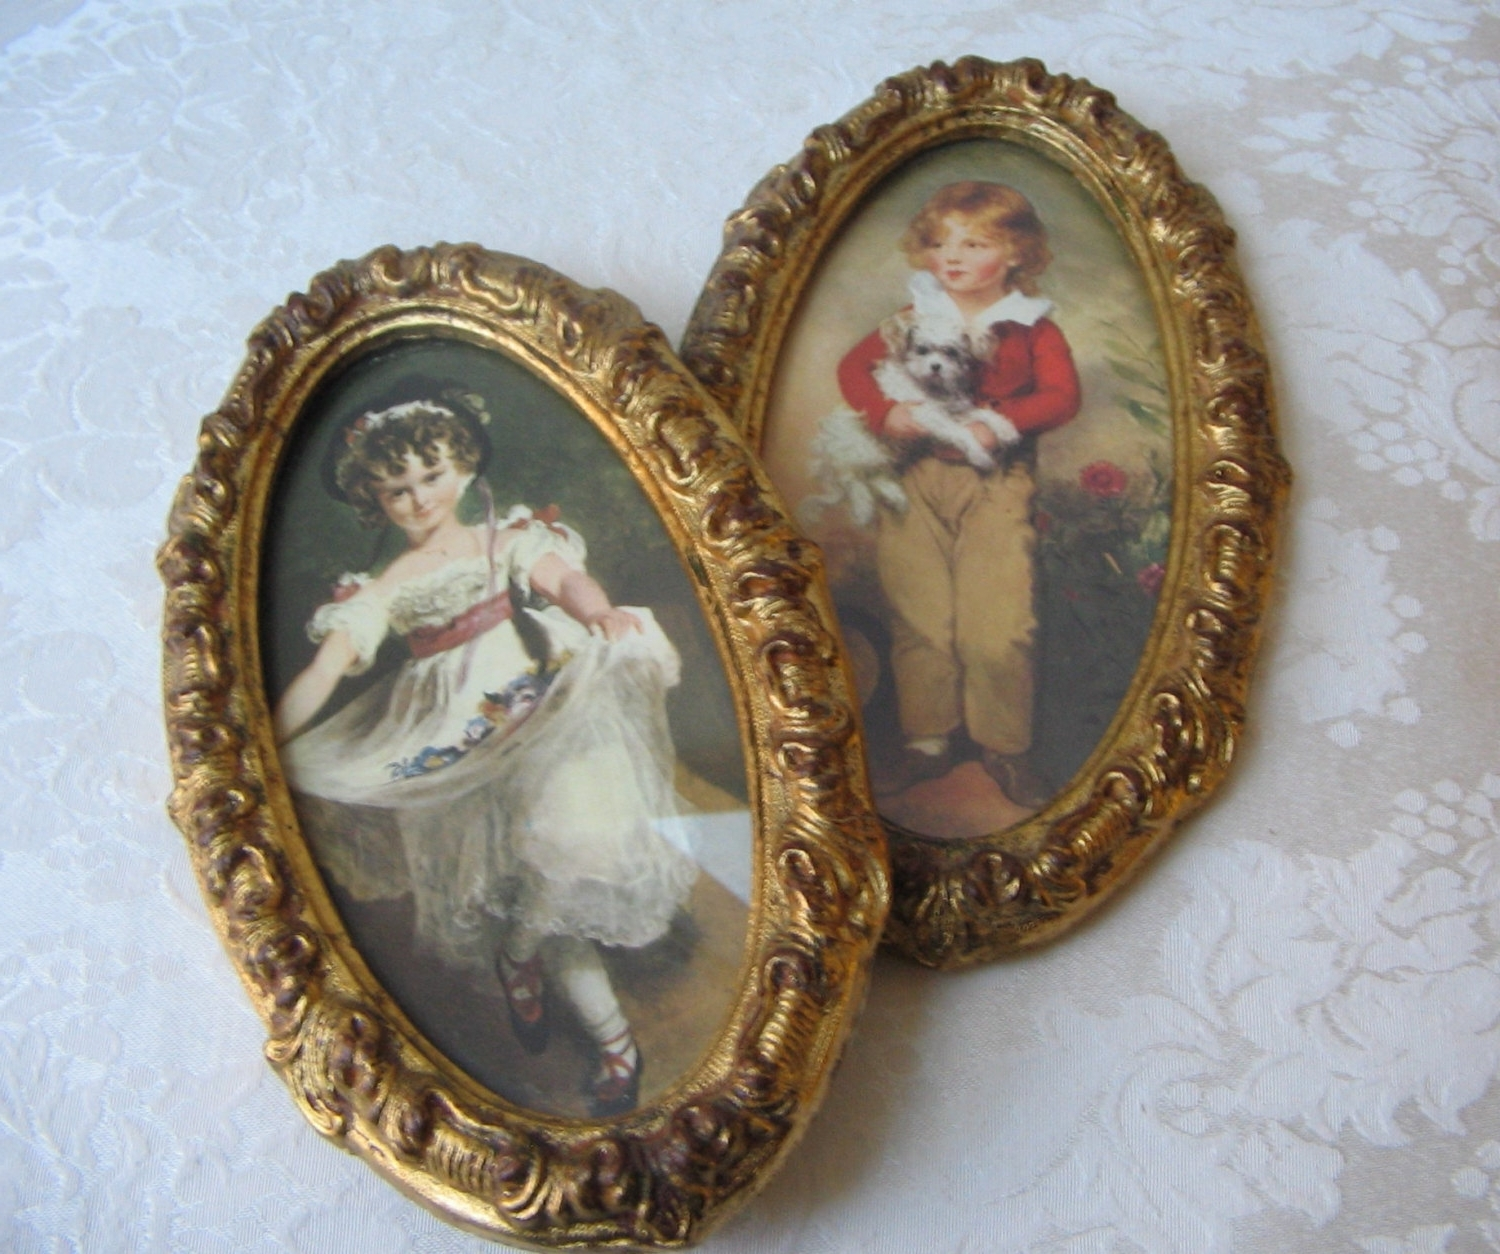 Vintage Italian Wall Art Within Well Known Vintage Florentine Prints In Ornate Gold Italian Frames Of Boy (View 8 of 15)